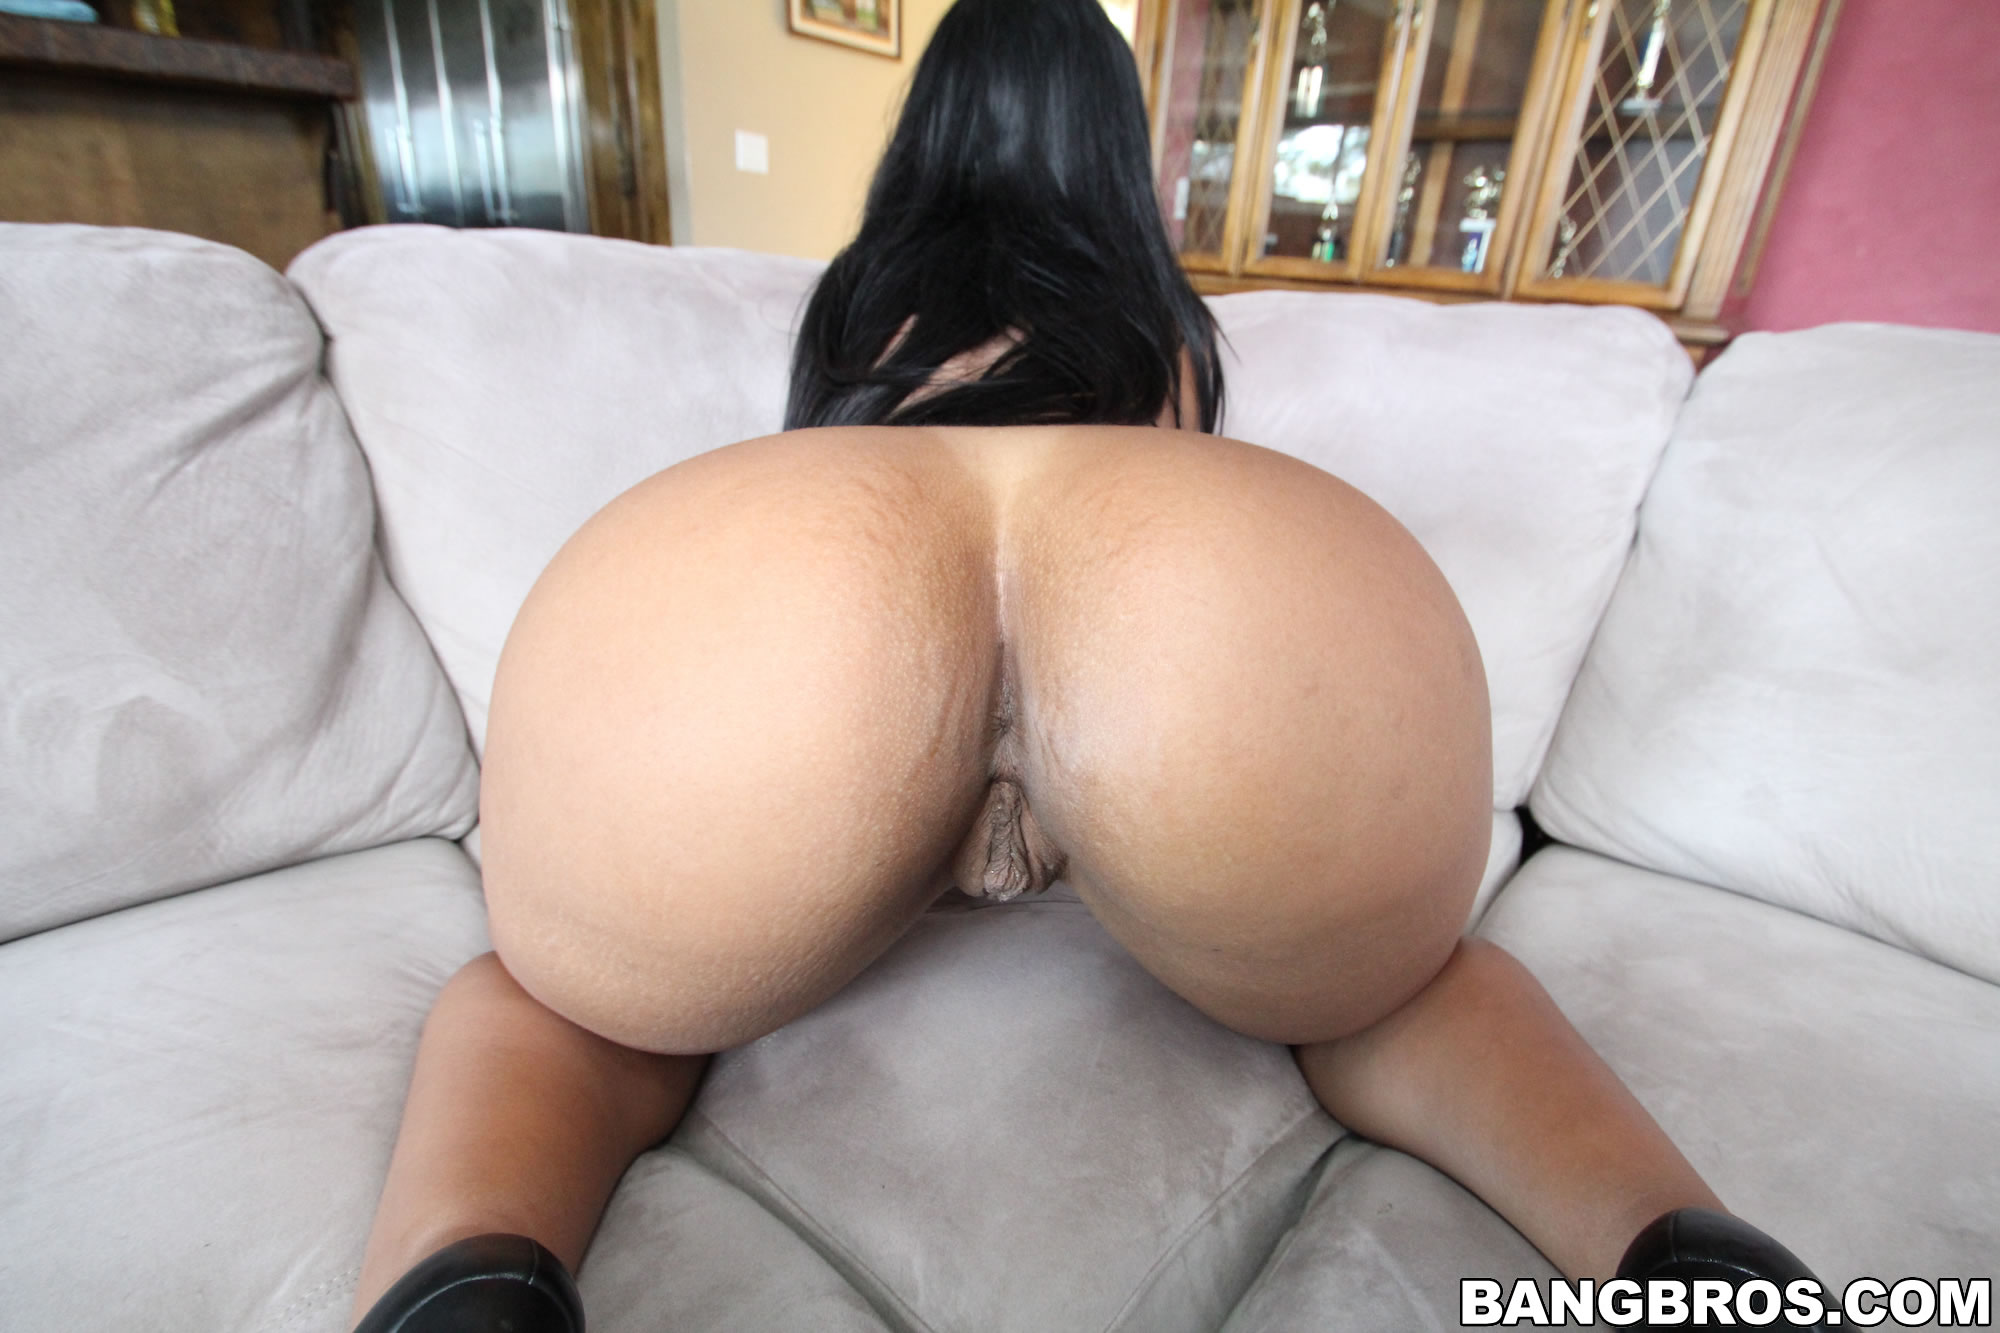 Monster ass images nude drunk pornostar